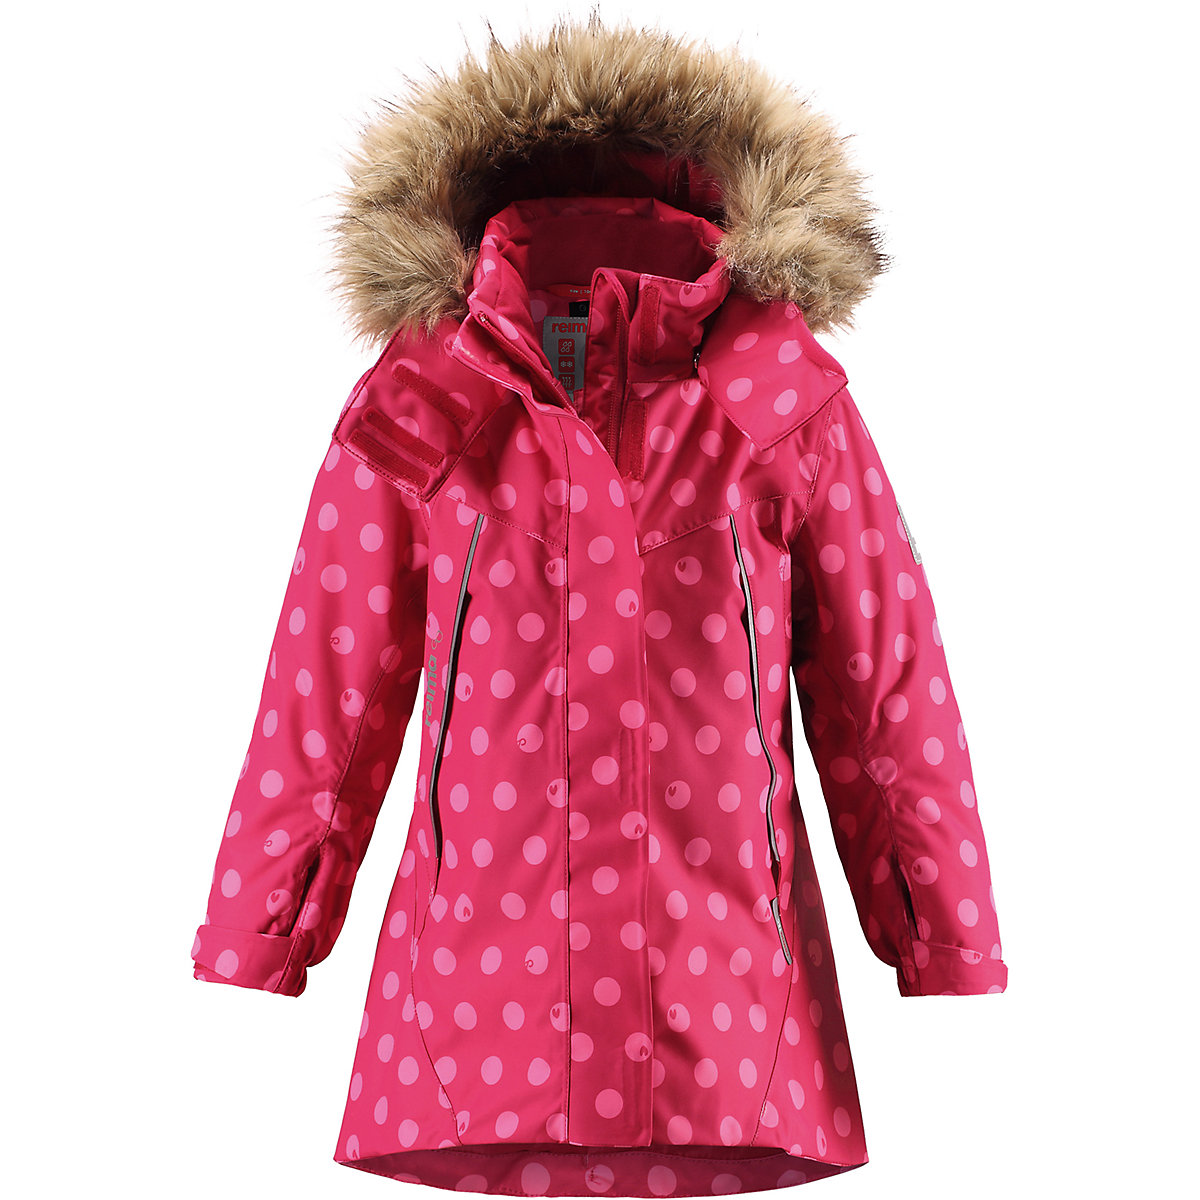 REIMA Jackets & Coats 8689335 for girls baby clothing winter warm boy girl jacket Polyester arsuxeo thermal cycling jacket winter warm up bicycle clothing windproof waterproof breathable pockets mtb bike jersey 15 k